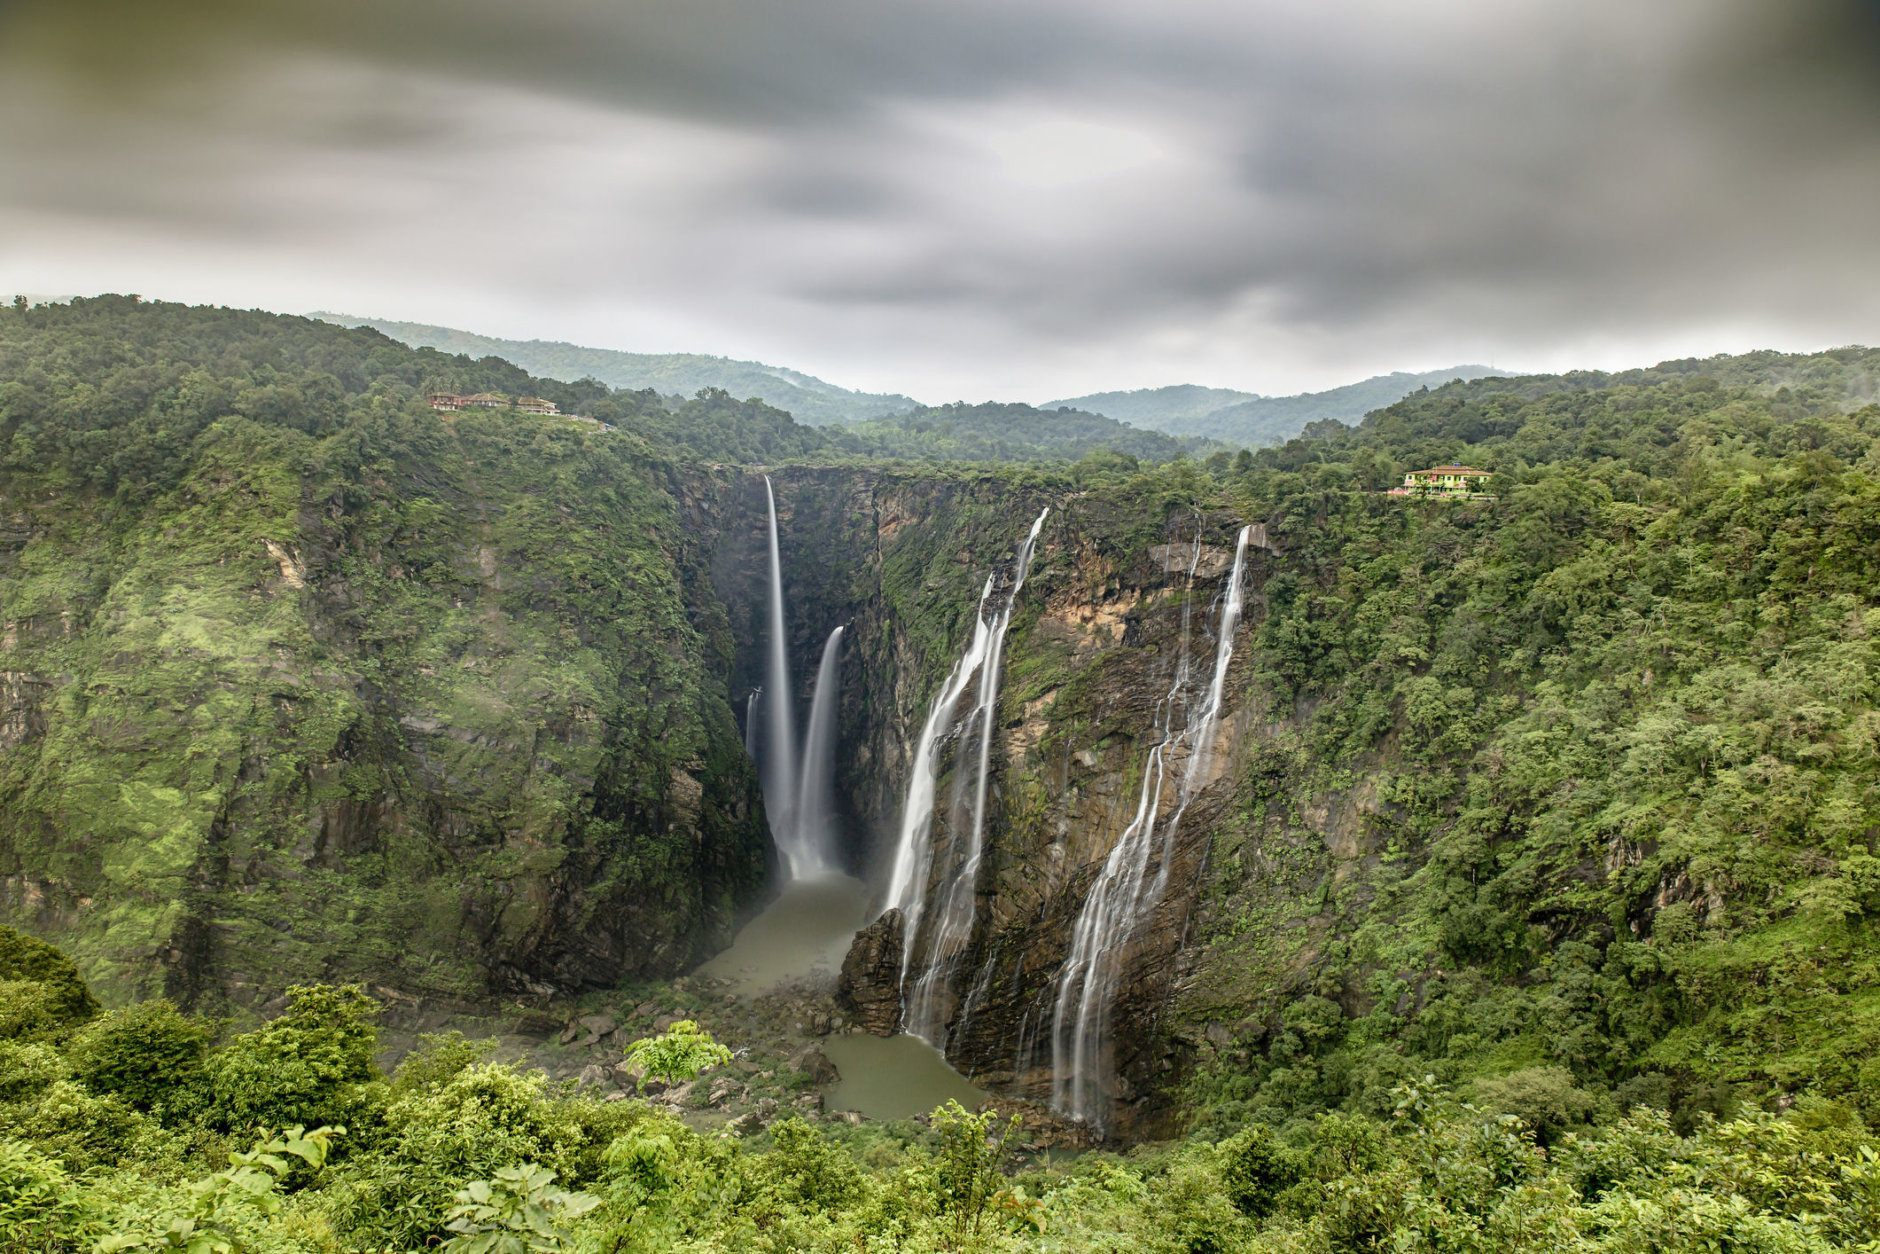 A view of the world famous Jog Falls in Karnataka, India during the monsoon season